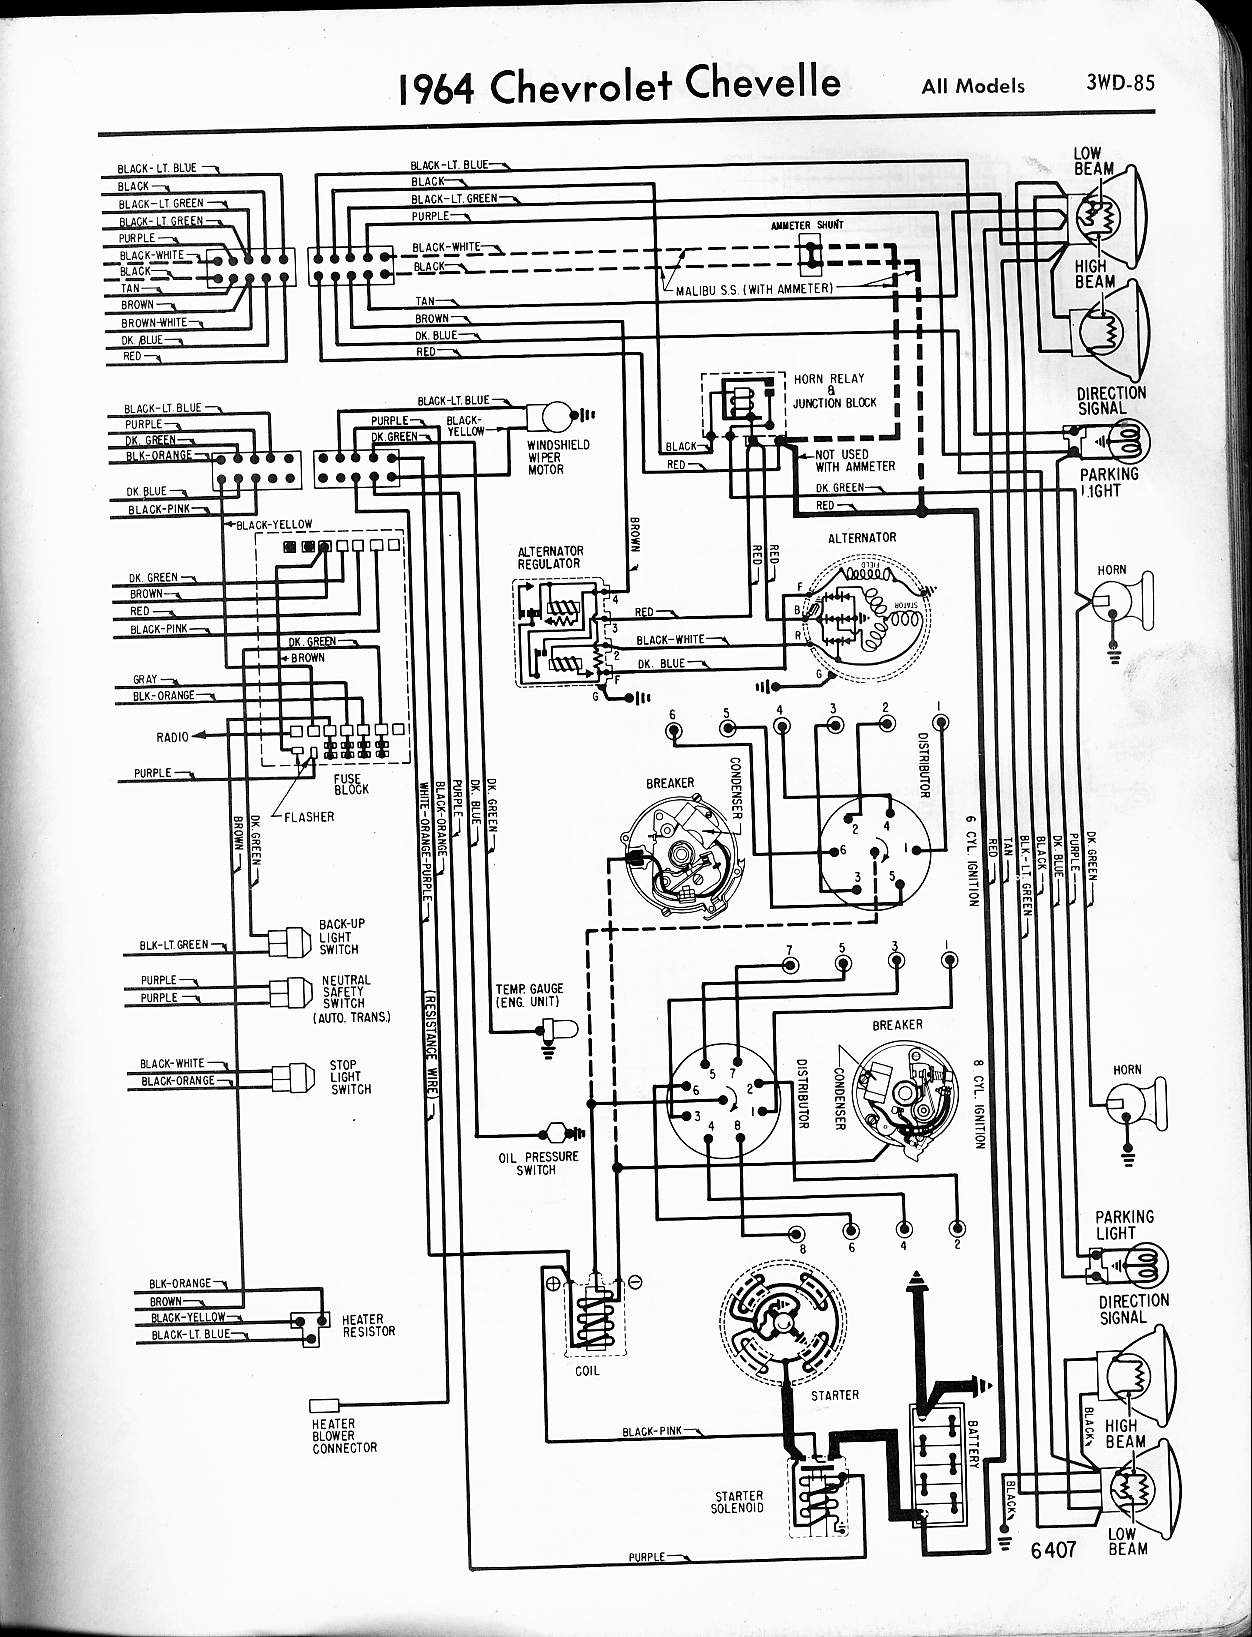 Turn Signal Wiring Schematic 62 Nova Diagram Will Be A Thing Peugeot 306 Fuse Box Layout 1999 Chevy For 38 Gm